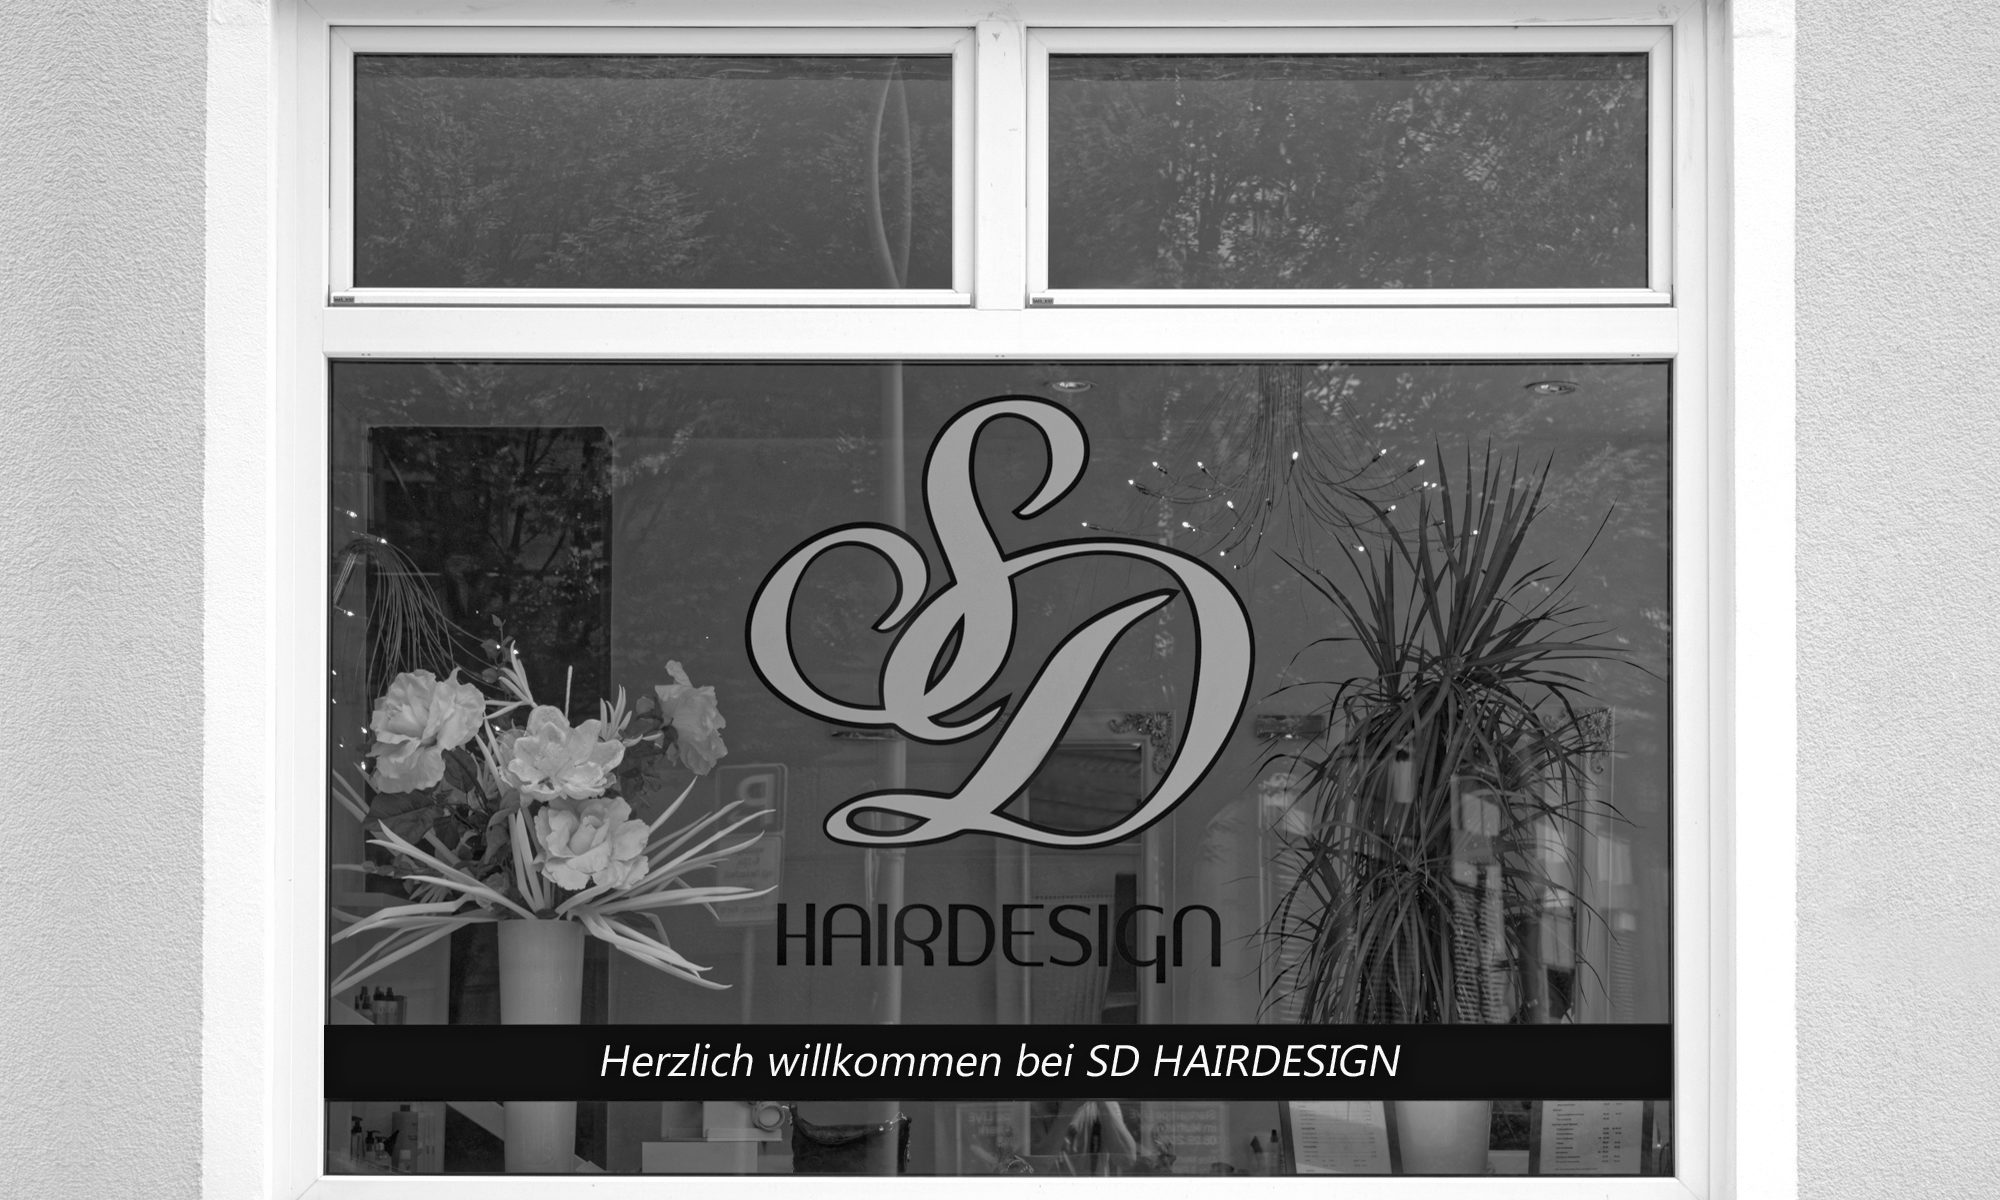 SD Hairdesign